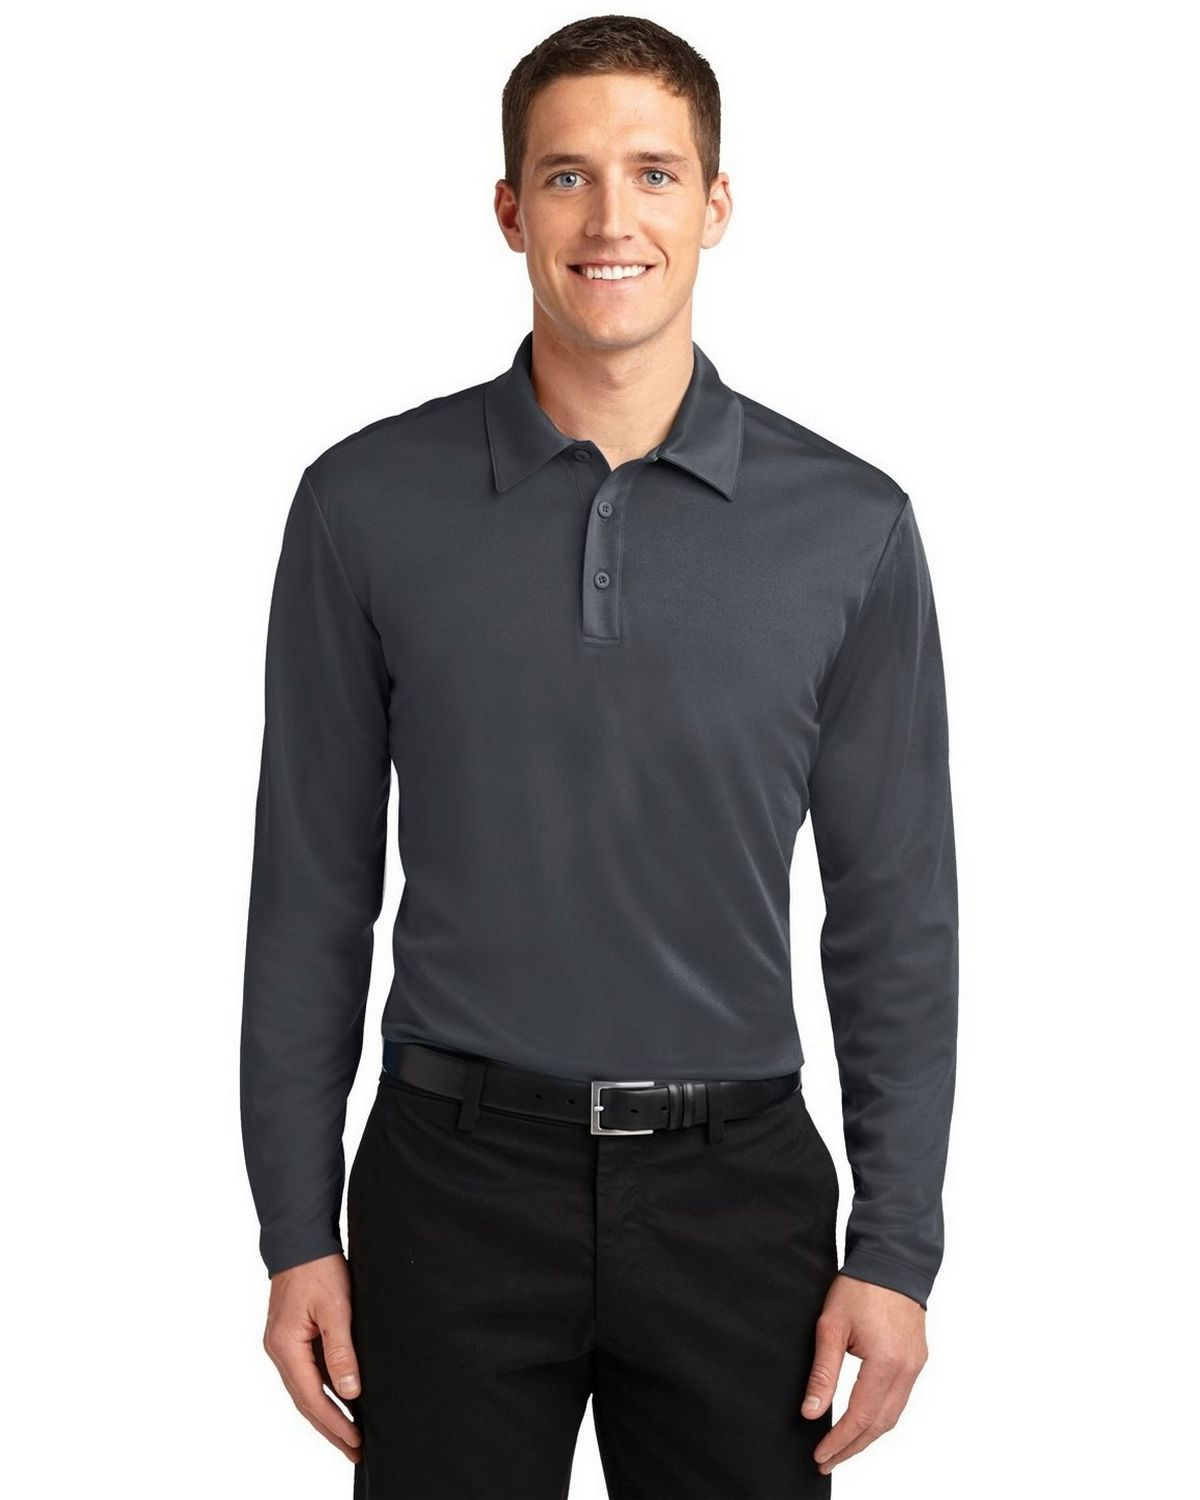 Port Authority K540LS Men's Silk Touch Performance Polo - Steel Grey - XS #silk